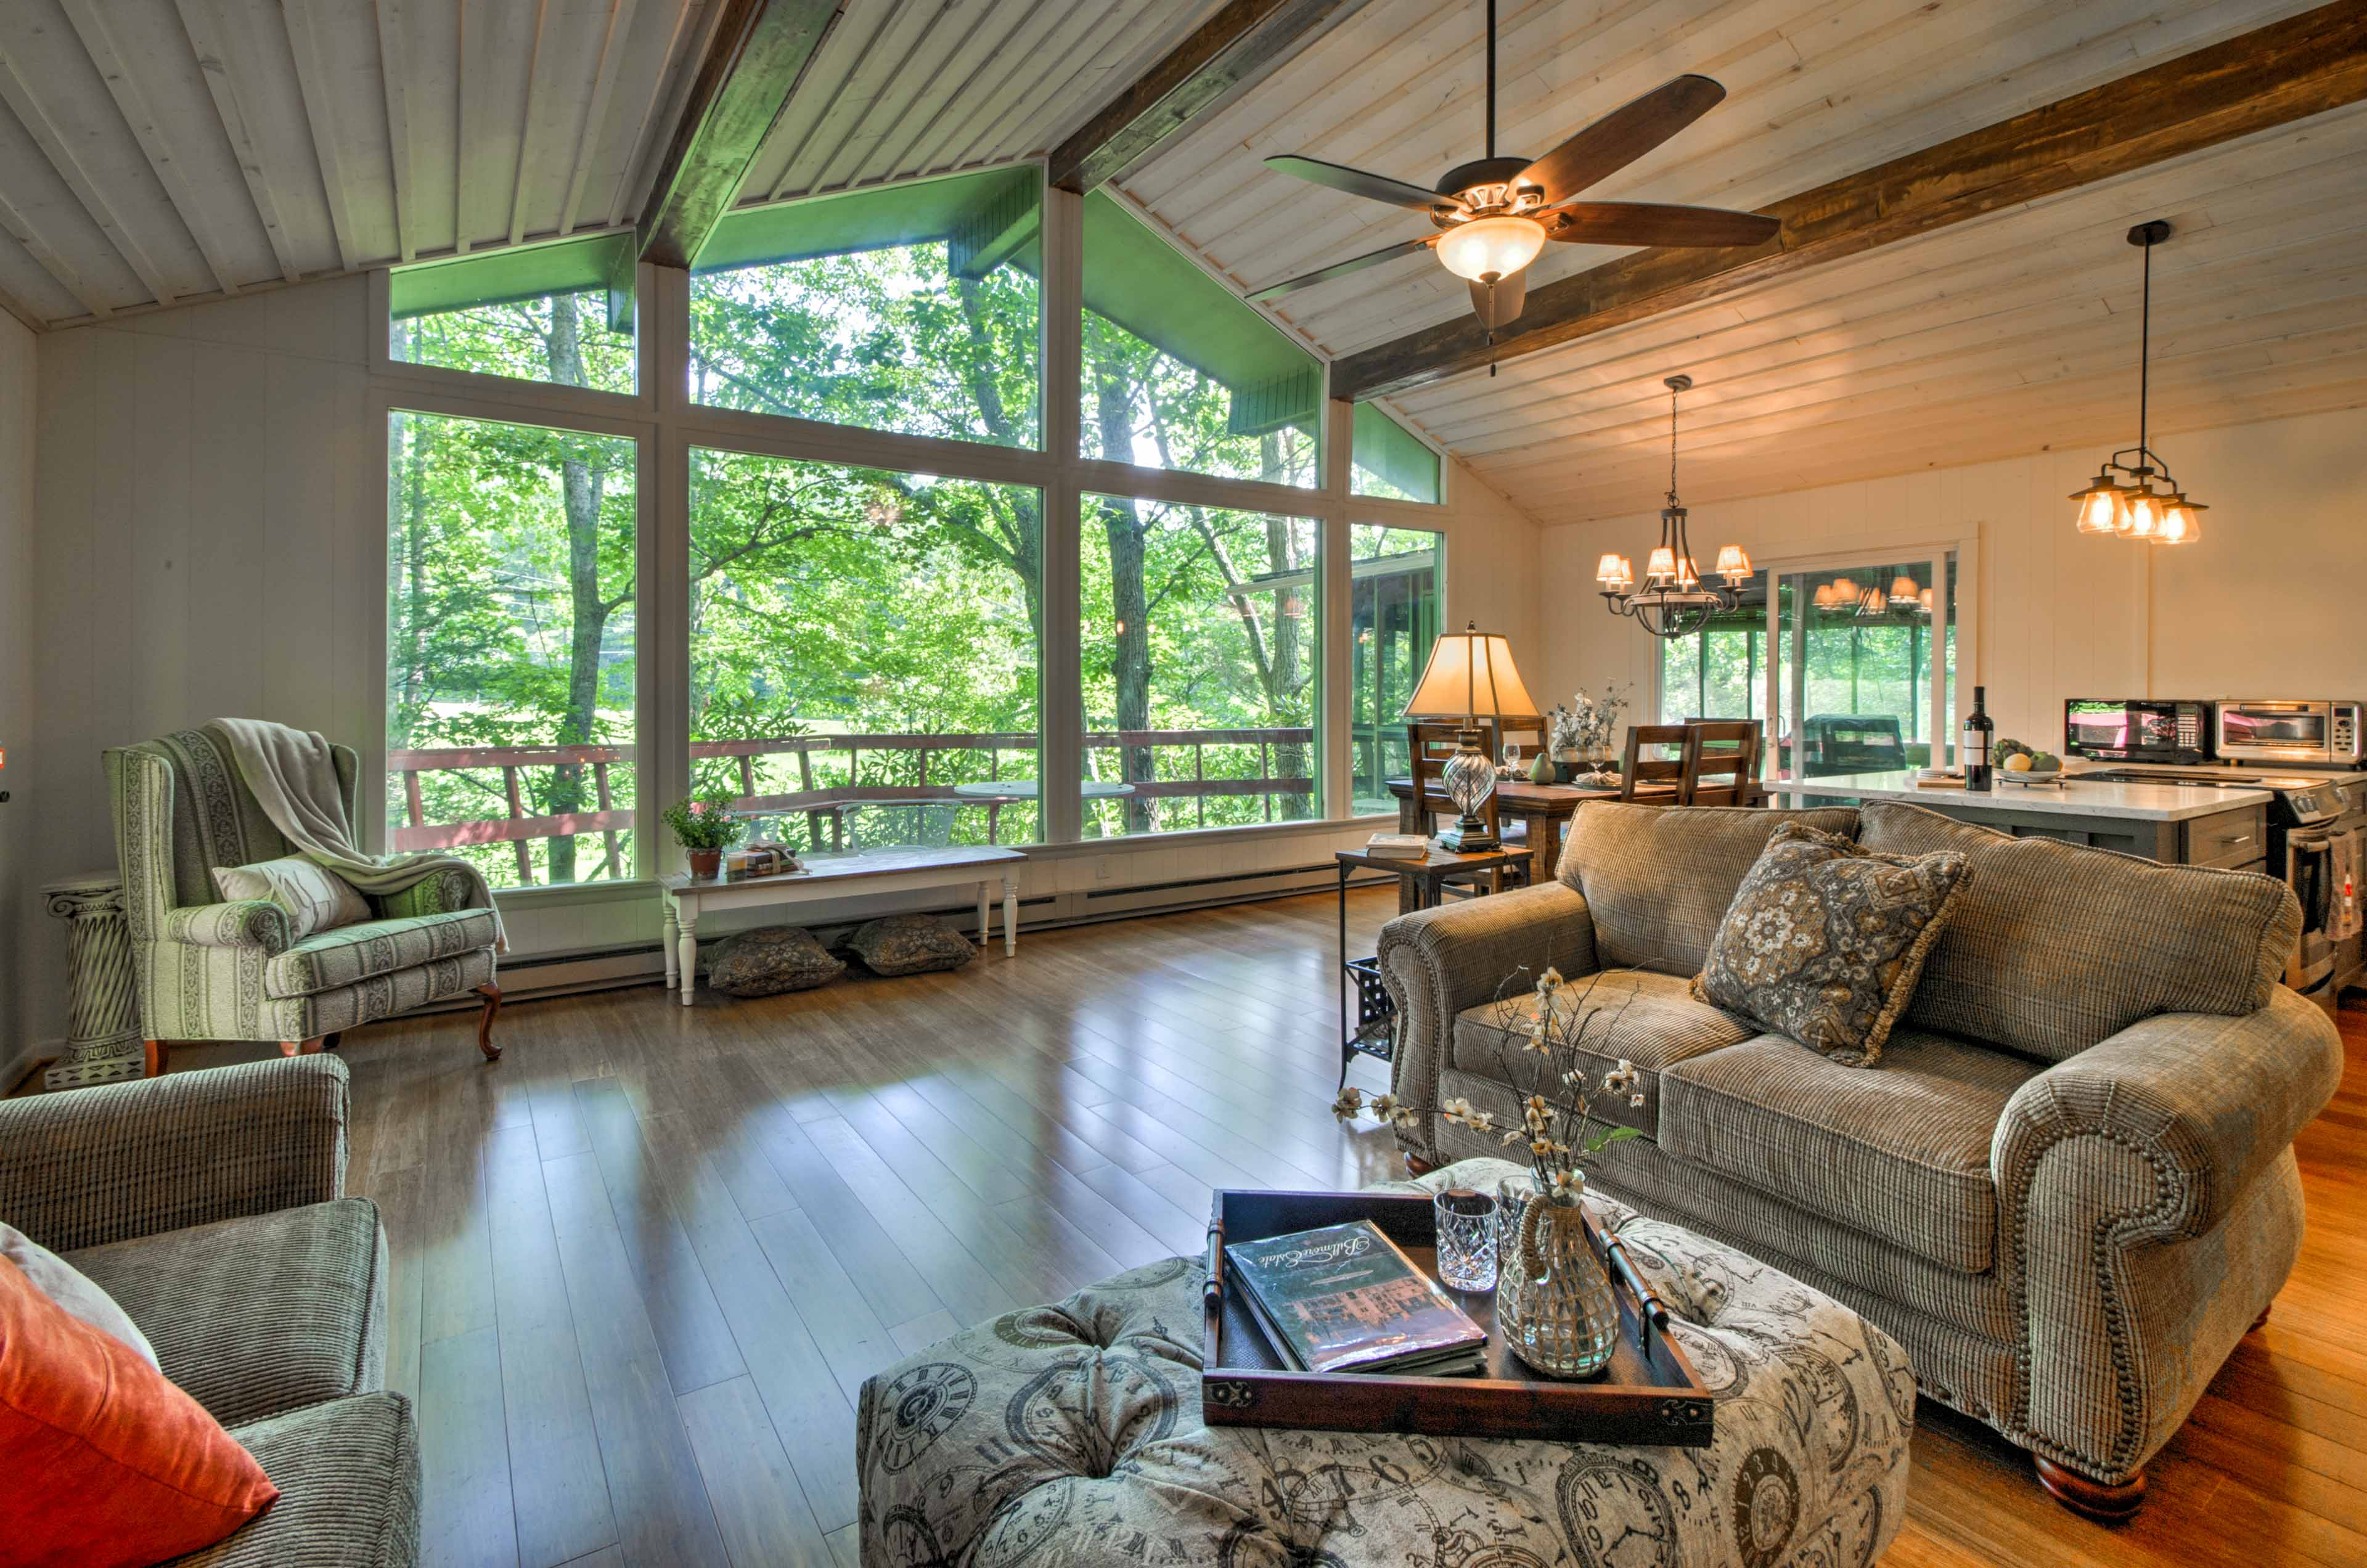 Enjoy serene views of the dense forest from the floor-to-ceiling windows during your stay at this 3-bedroom, 2-bathroom vacation rental house in Fairview.